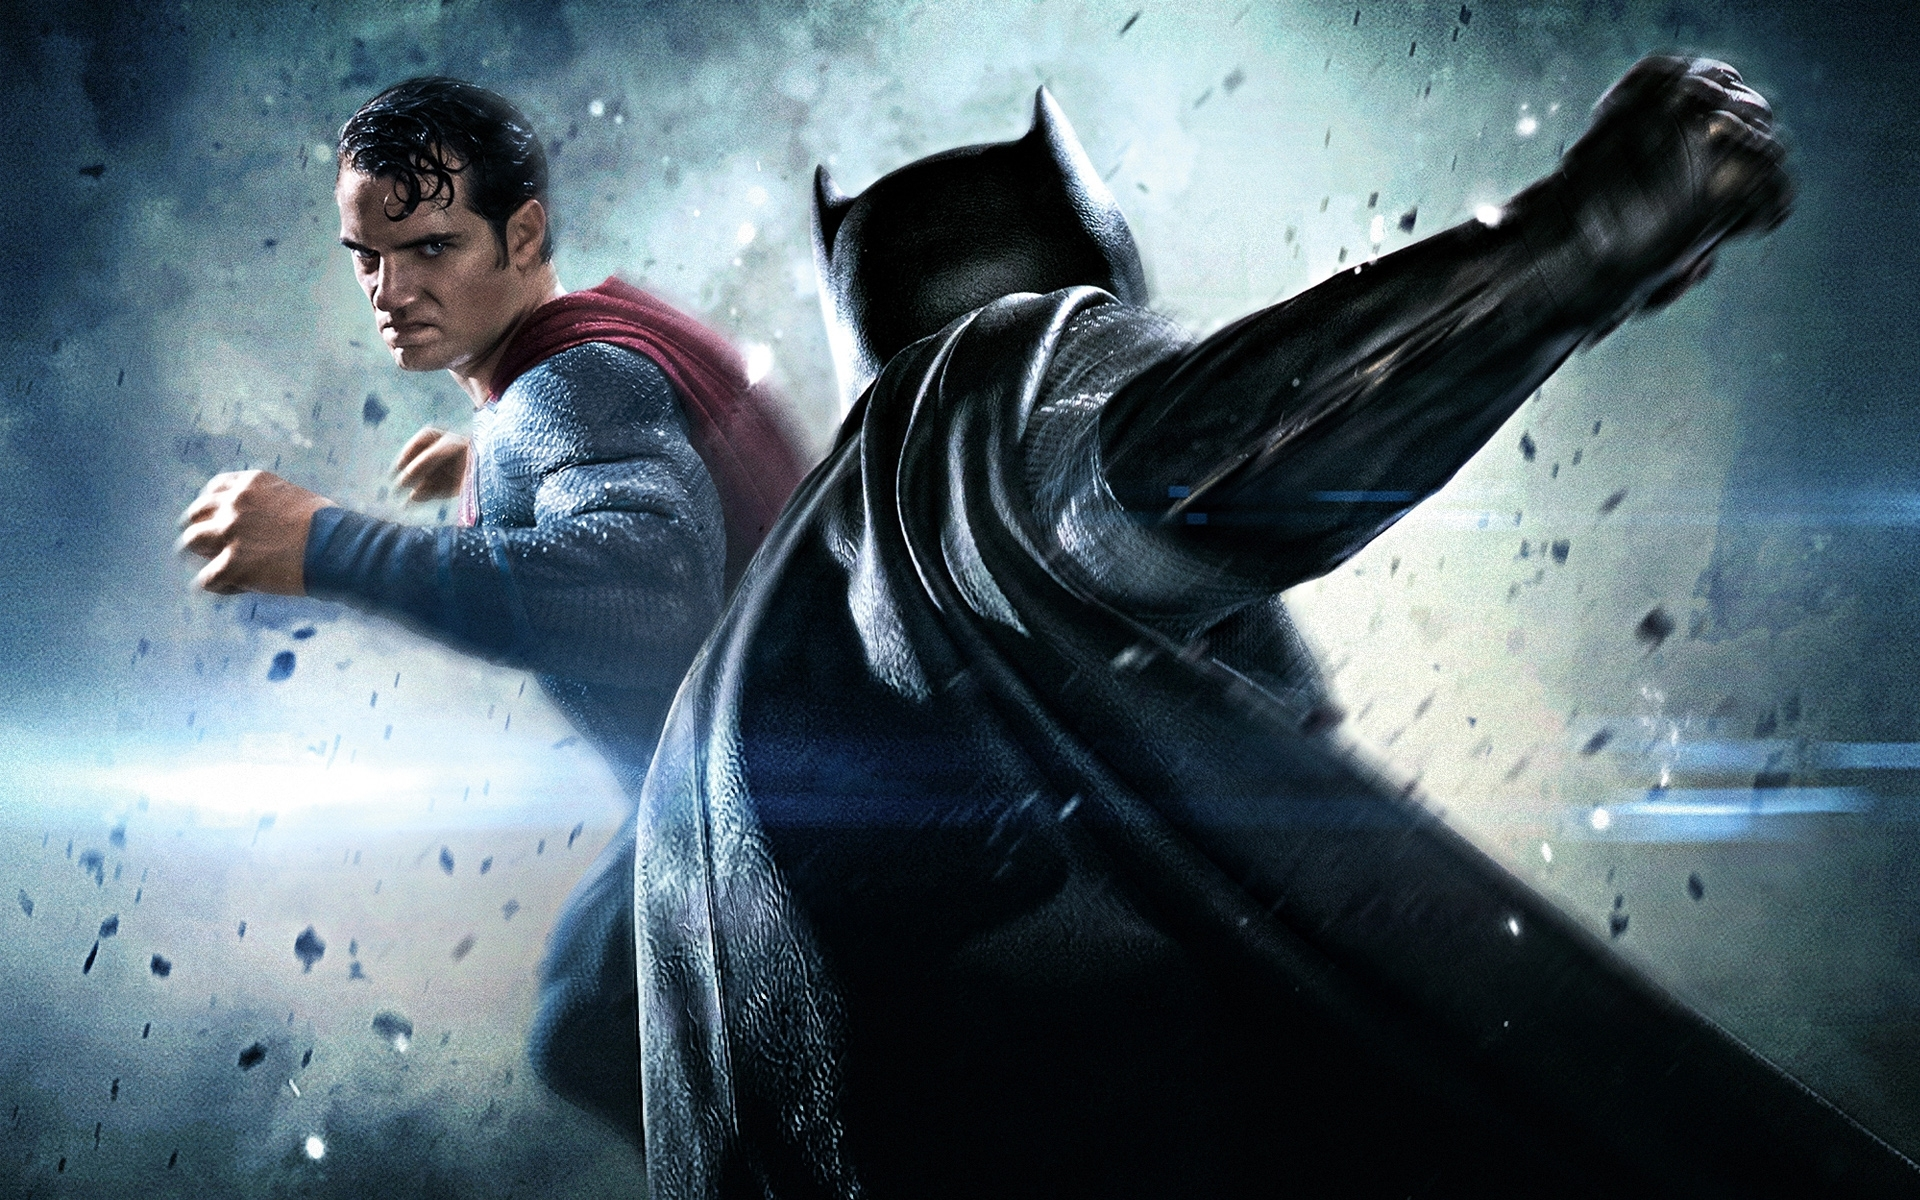 Title Movies Batman V Superman Movie Wallpapers Desktop Phone Tablet Dimension 1920 X 1200 File Type JPG JPEG